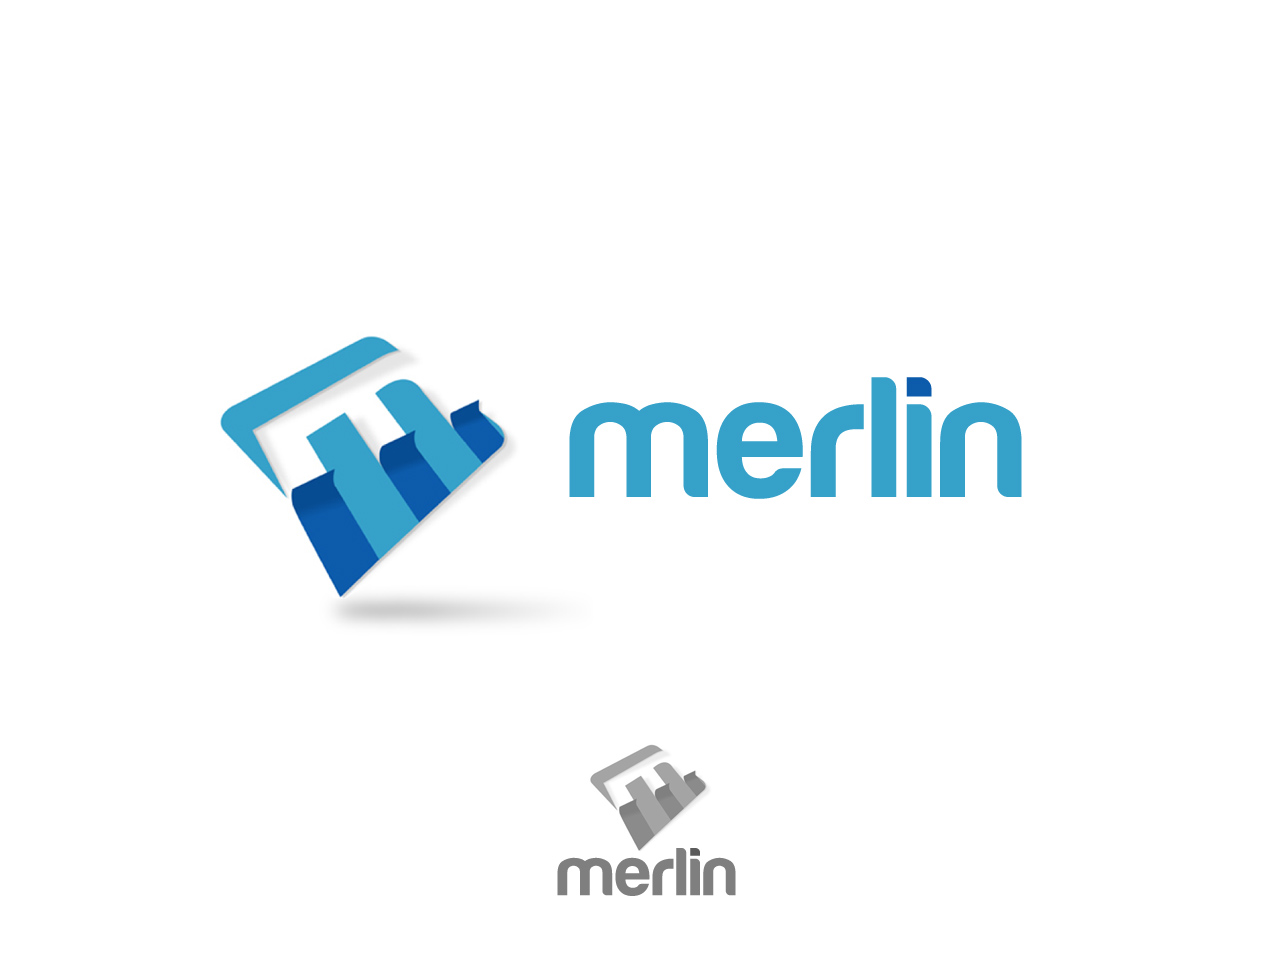 Logo Design by jpbituin - Entry No. 120 in the Logo Design Contest Imaginative Logo Design for Merlin.